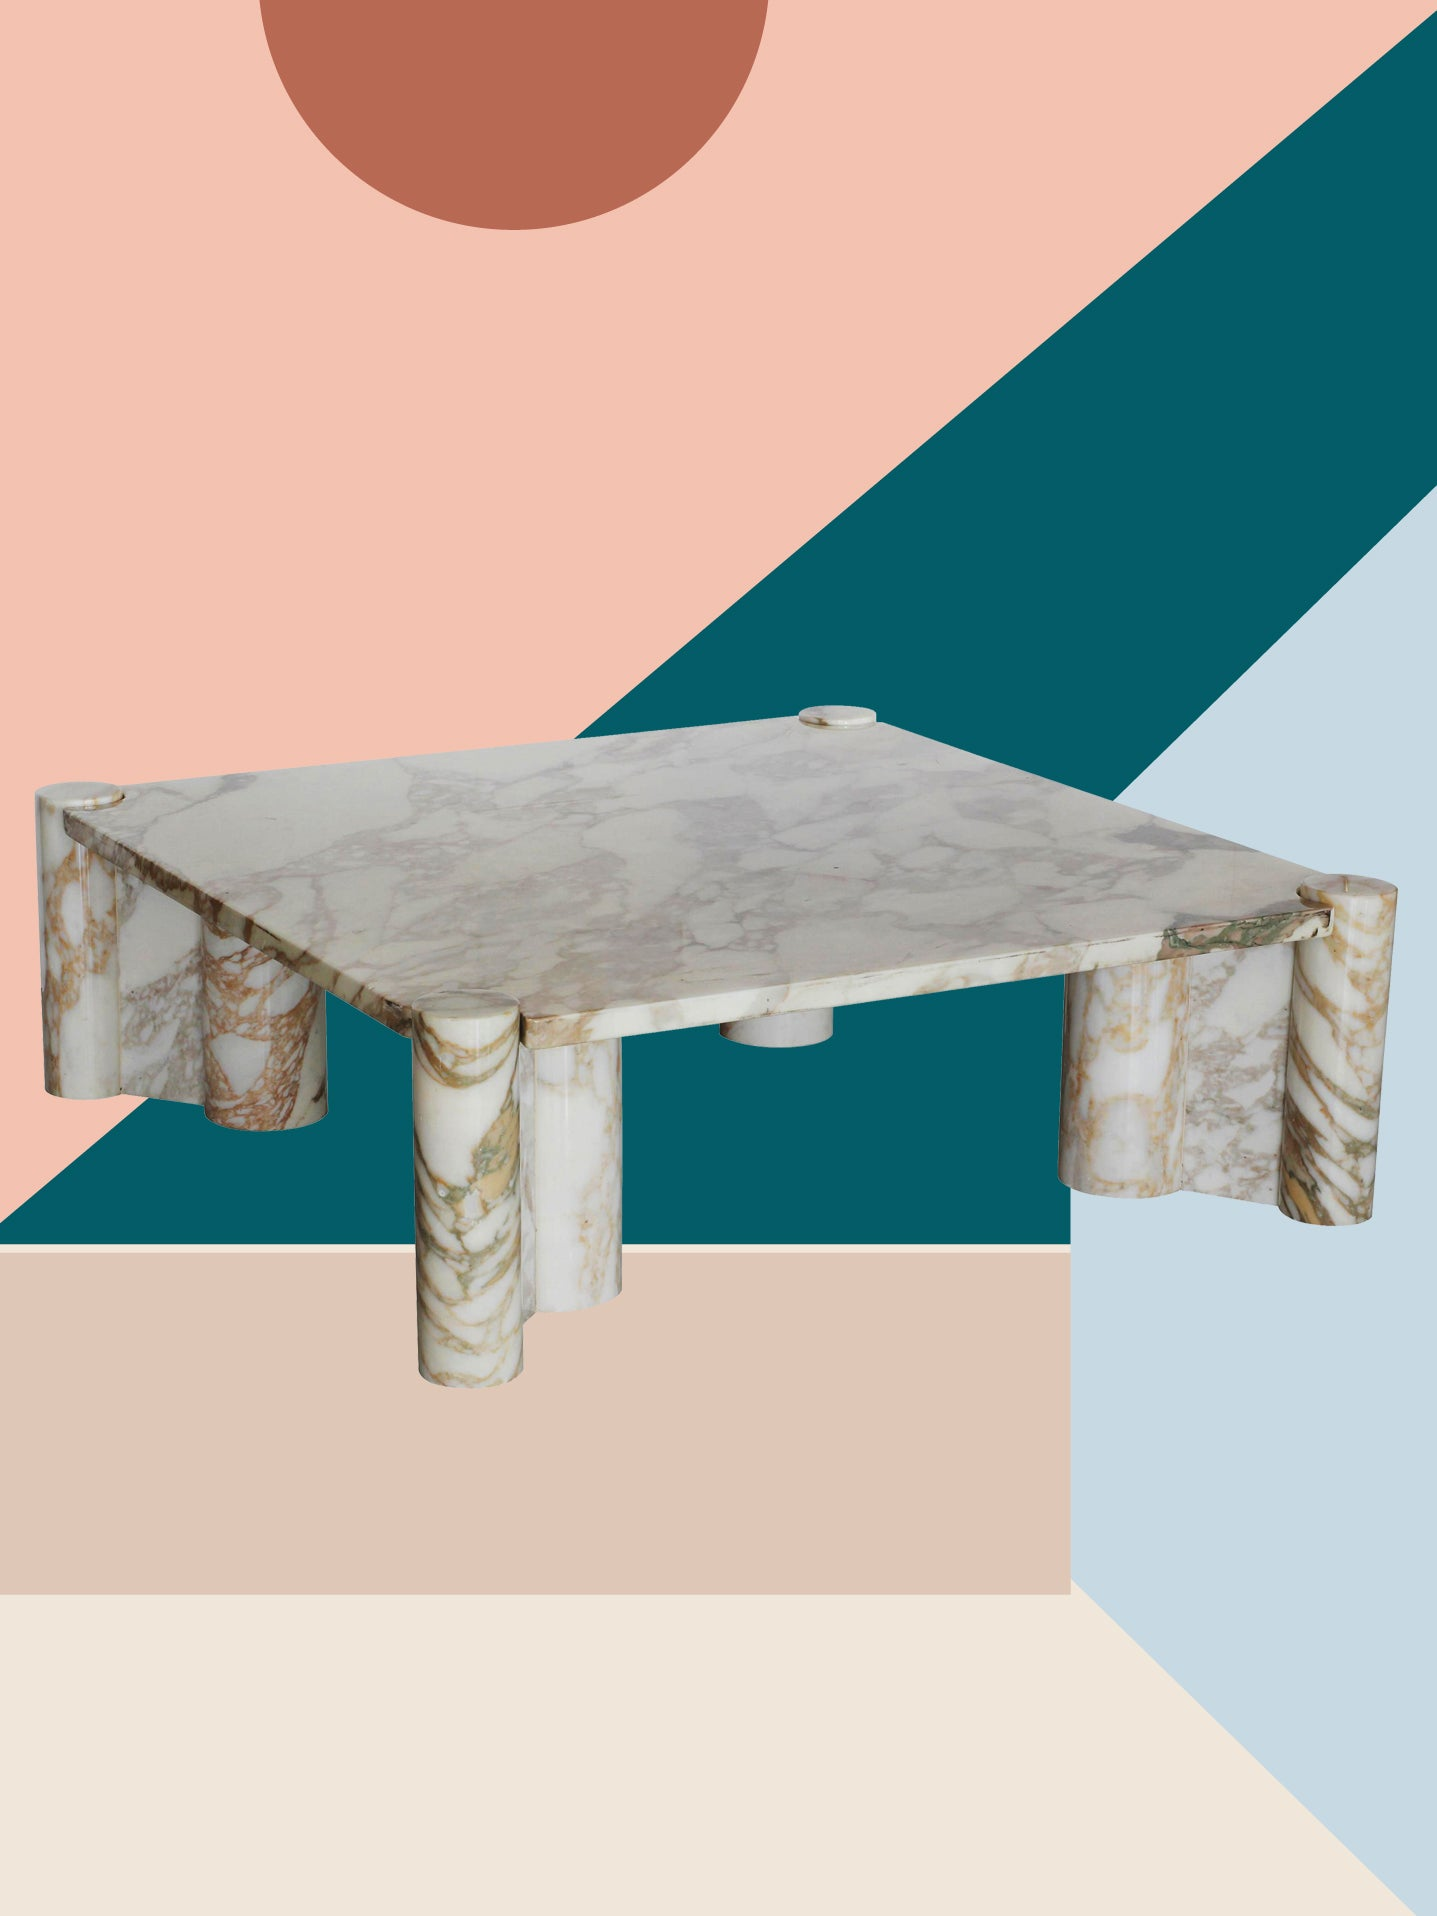 The Coffee Table (Just About) Every Designer Has in Their Home